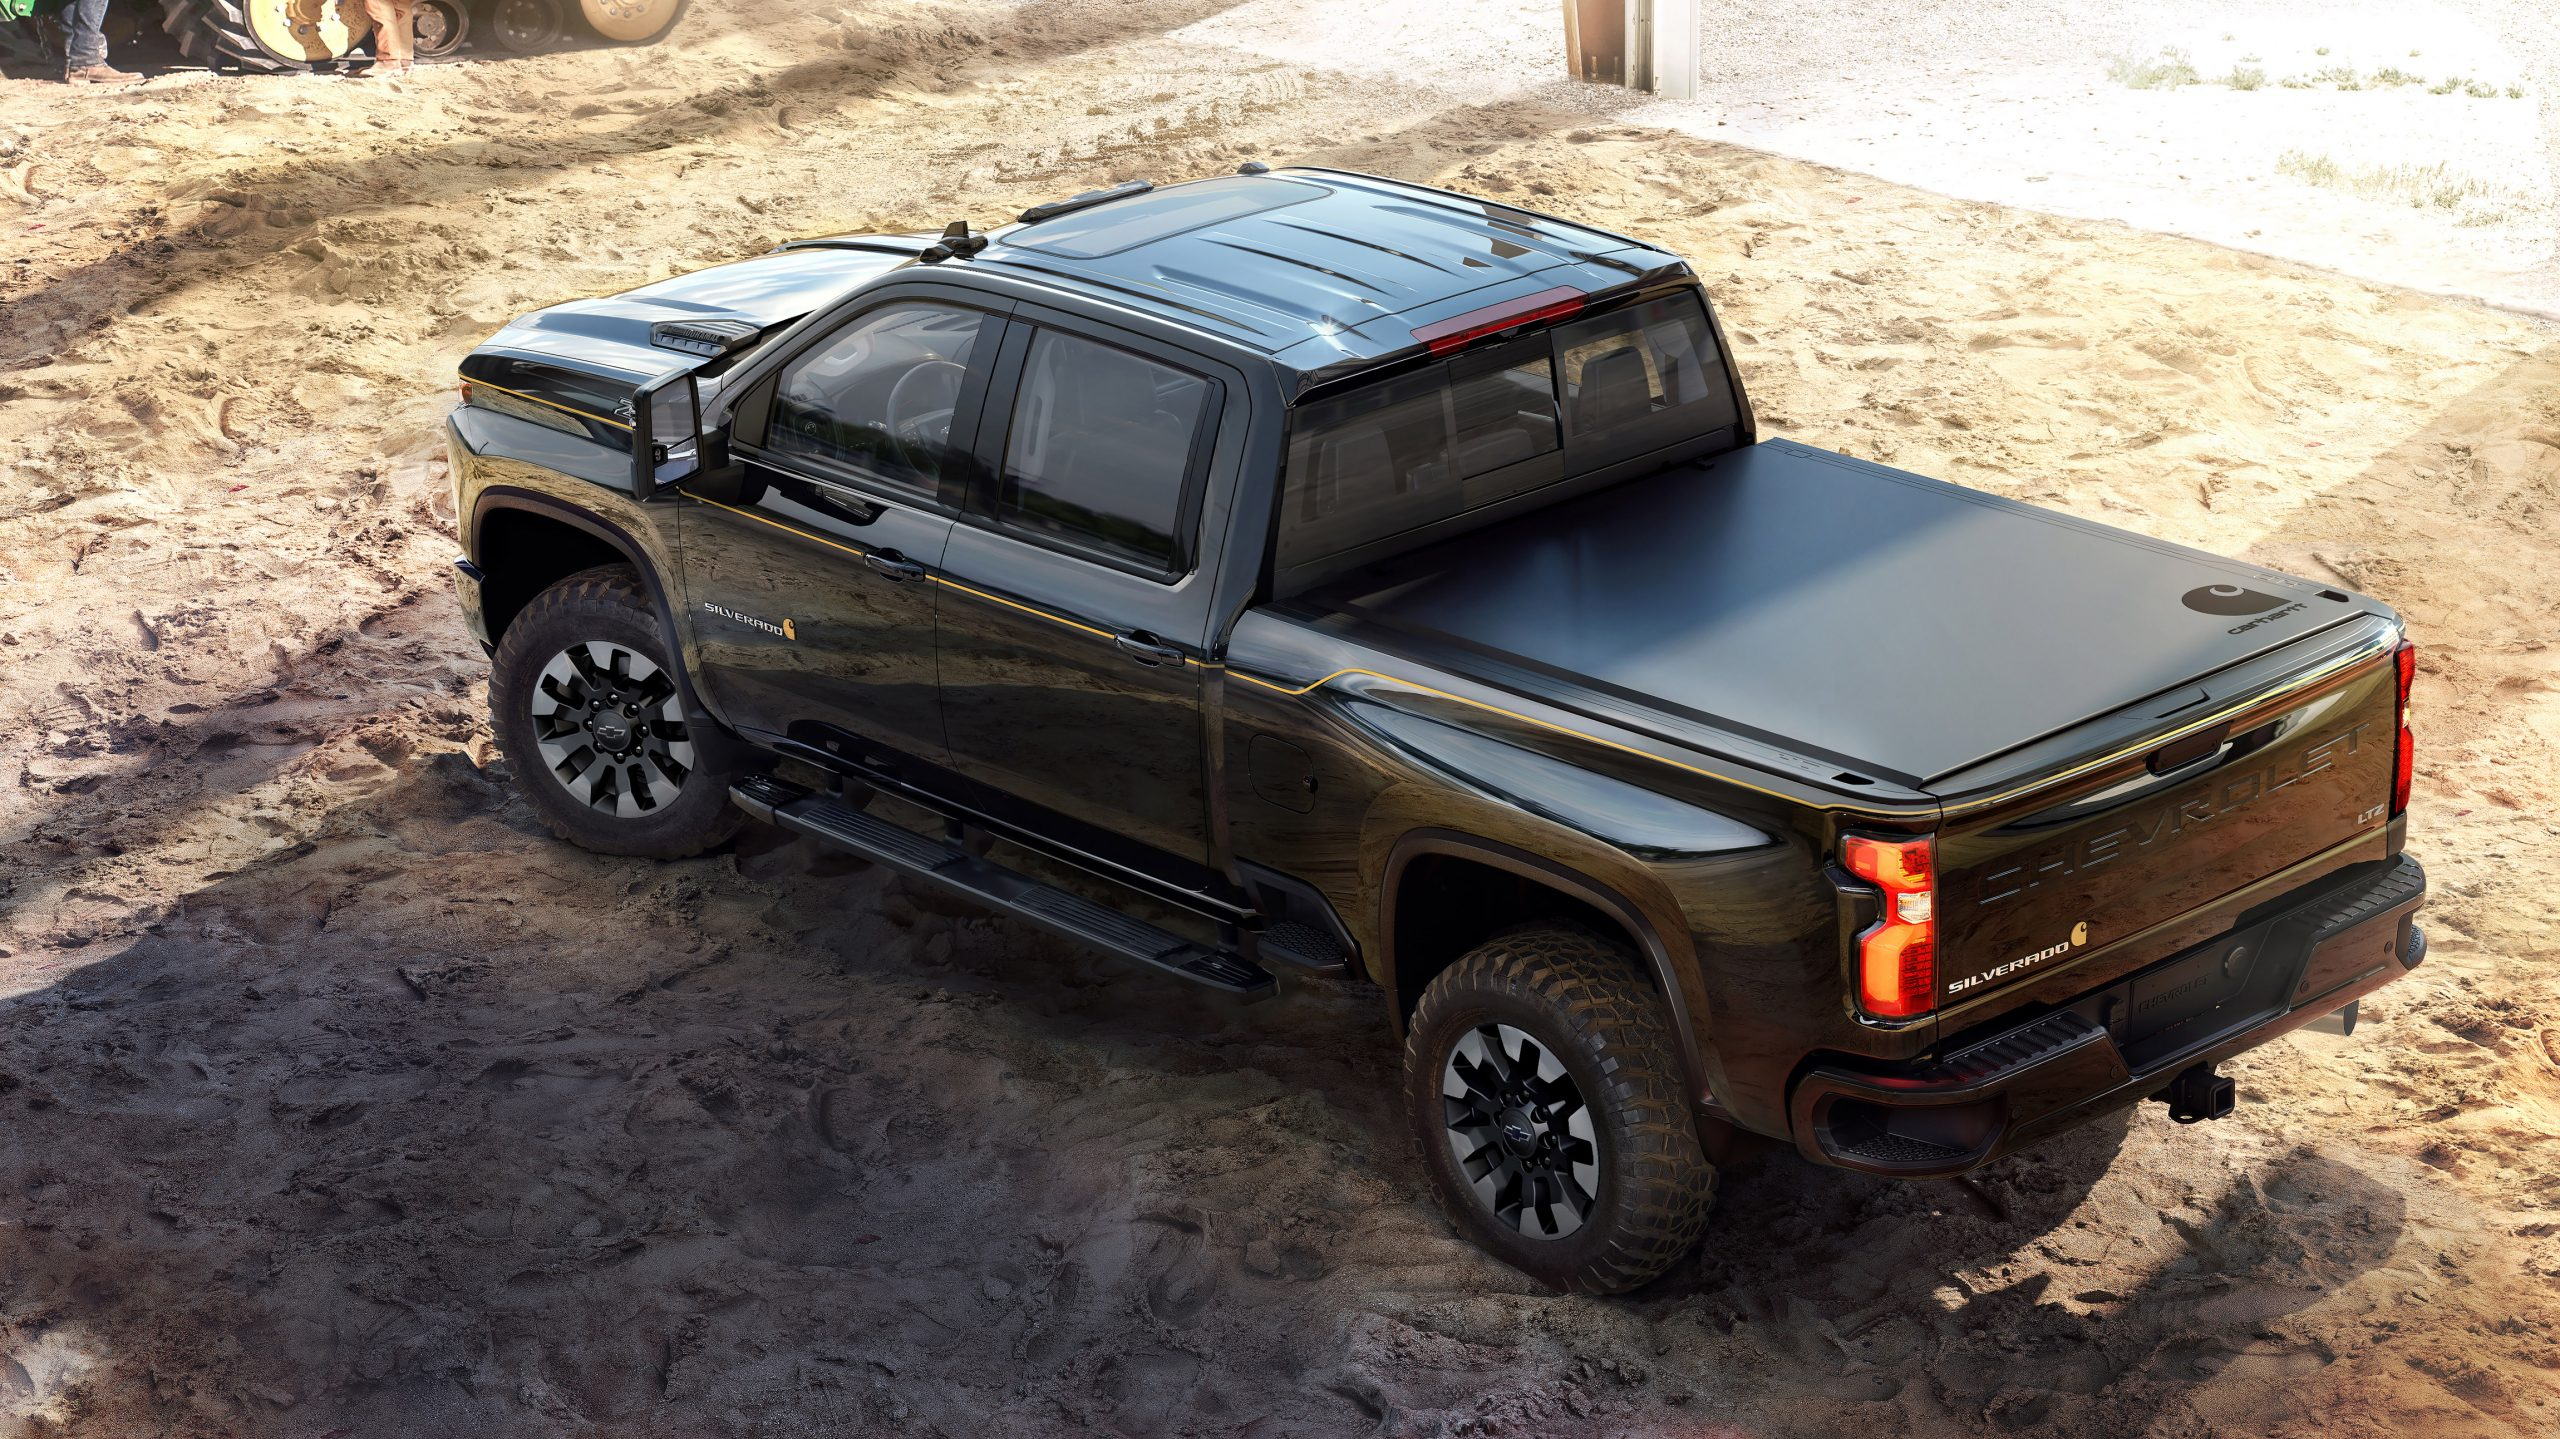 Chevy's Carhartt Edition Silverado Is Back—For Real This 2021 Chevy Silverado 1500 Double Cab Accessories, Seat Covers, Models